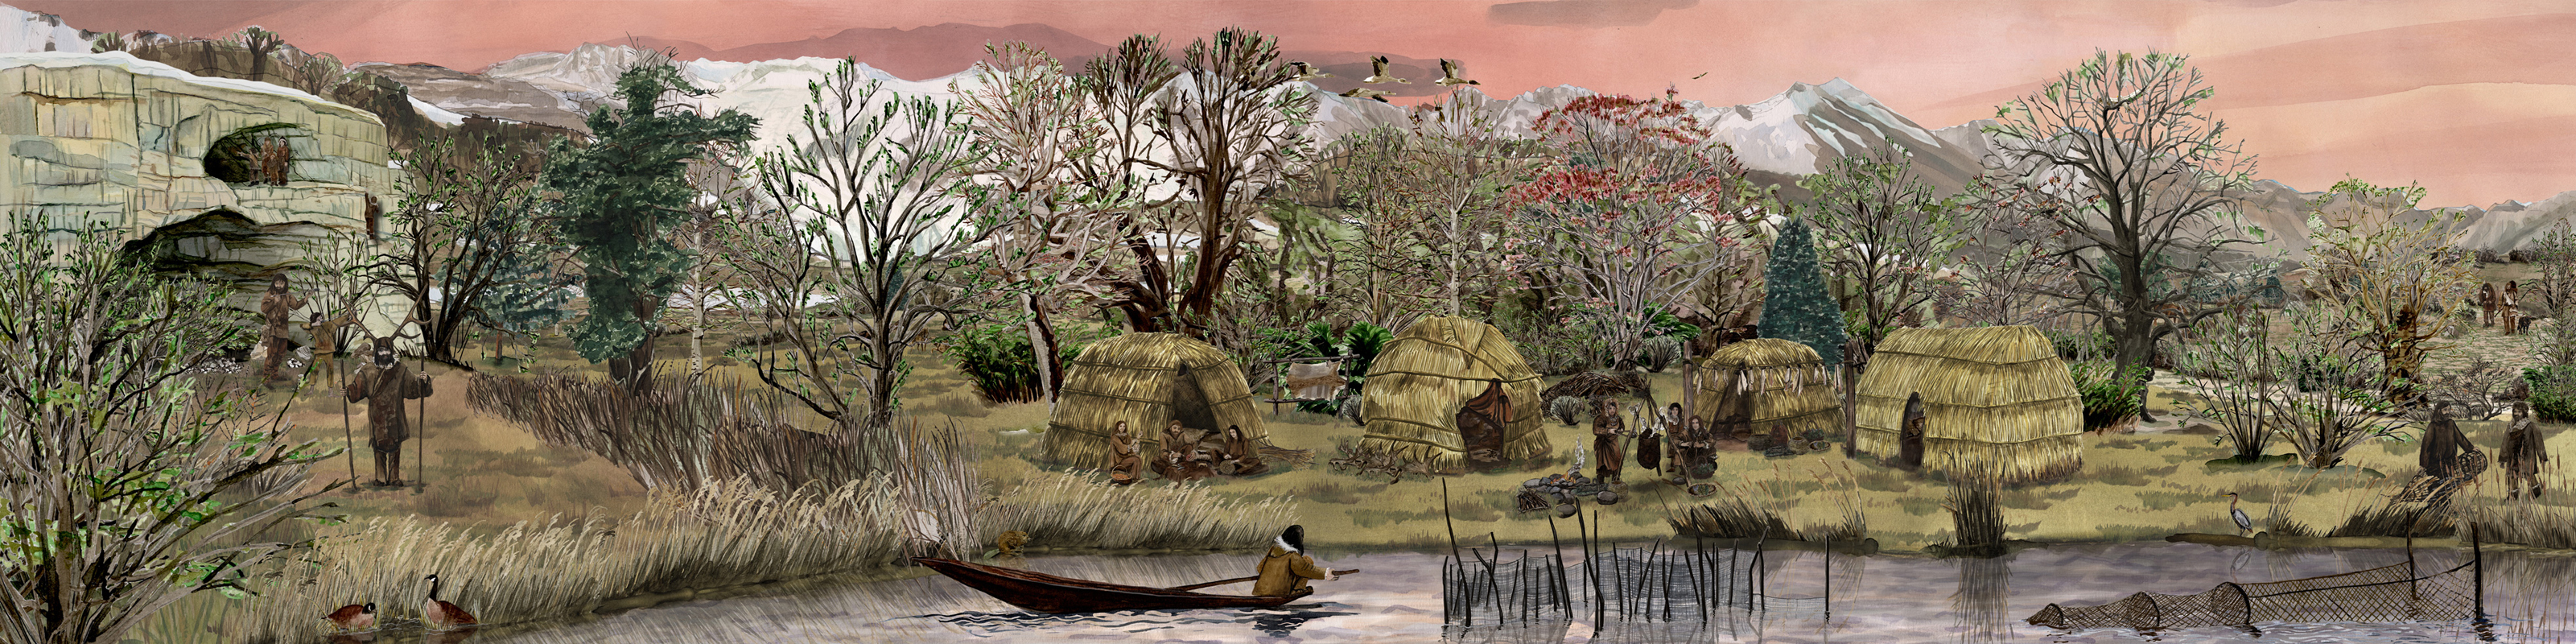 Mesolithikum, mesolithic age